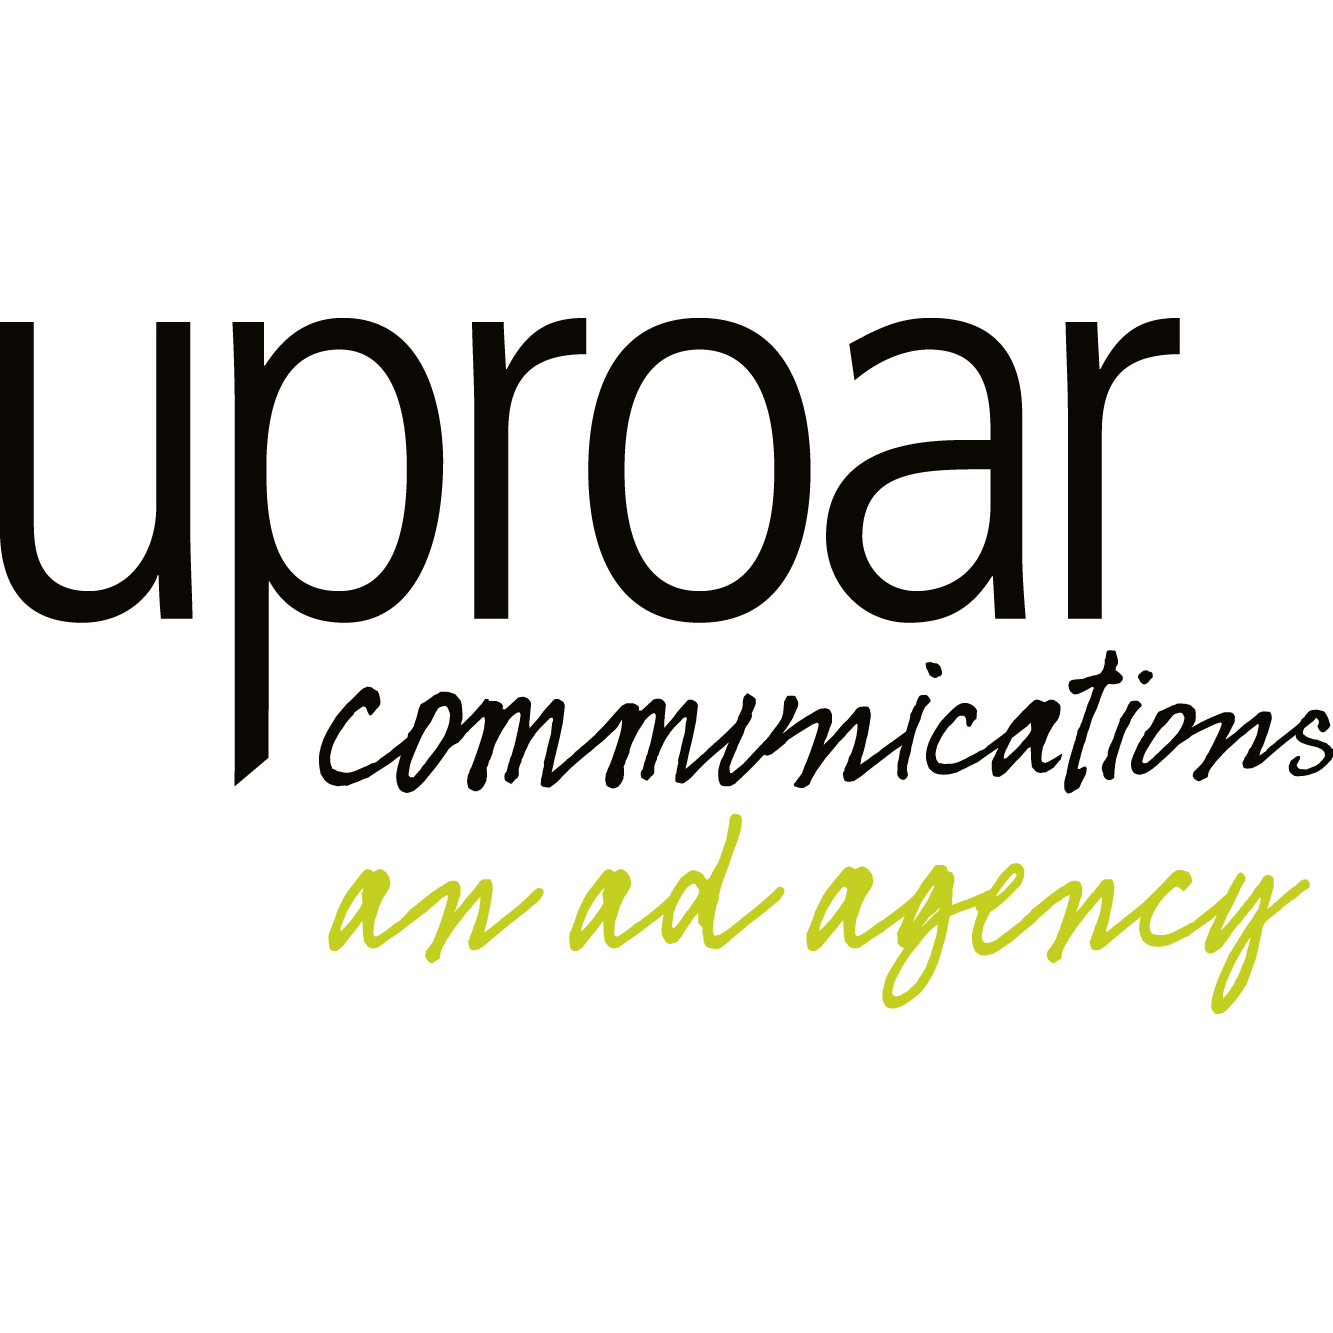 Uproar Communications